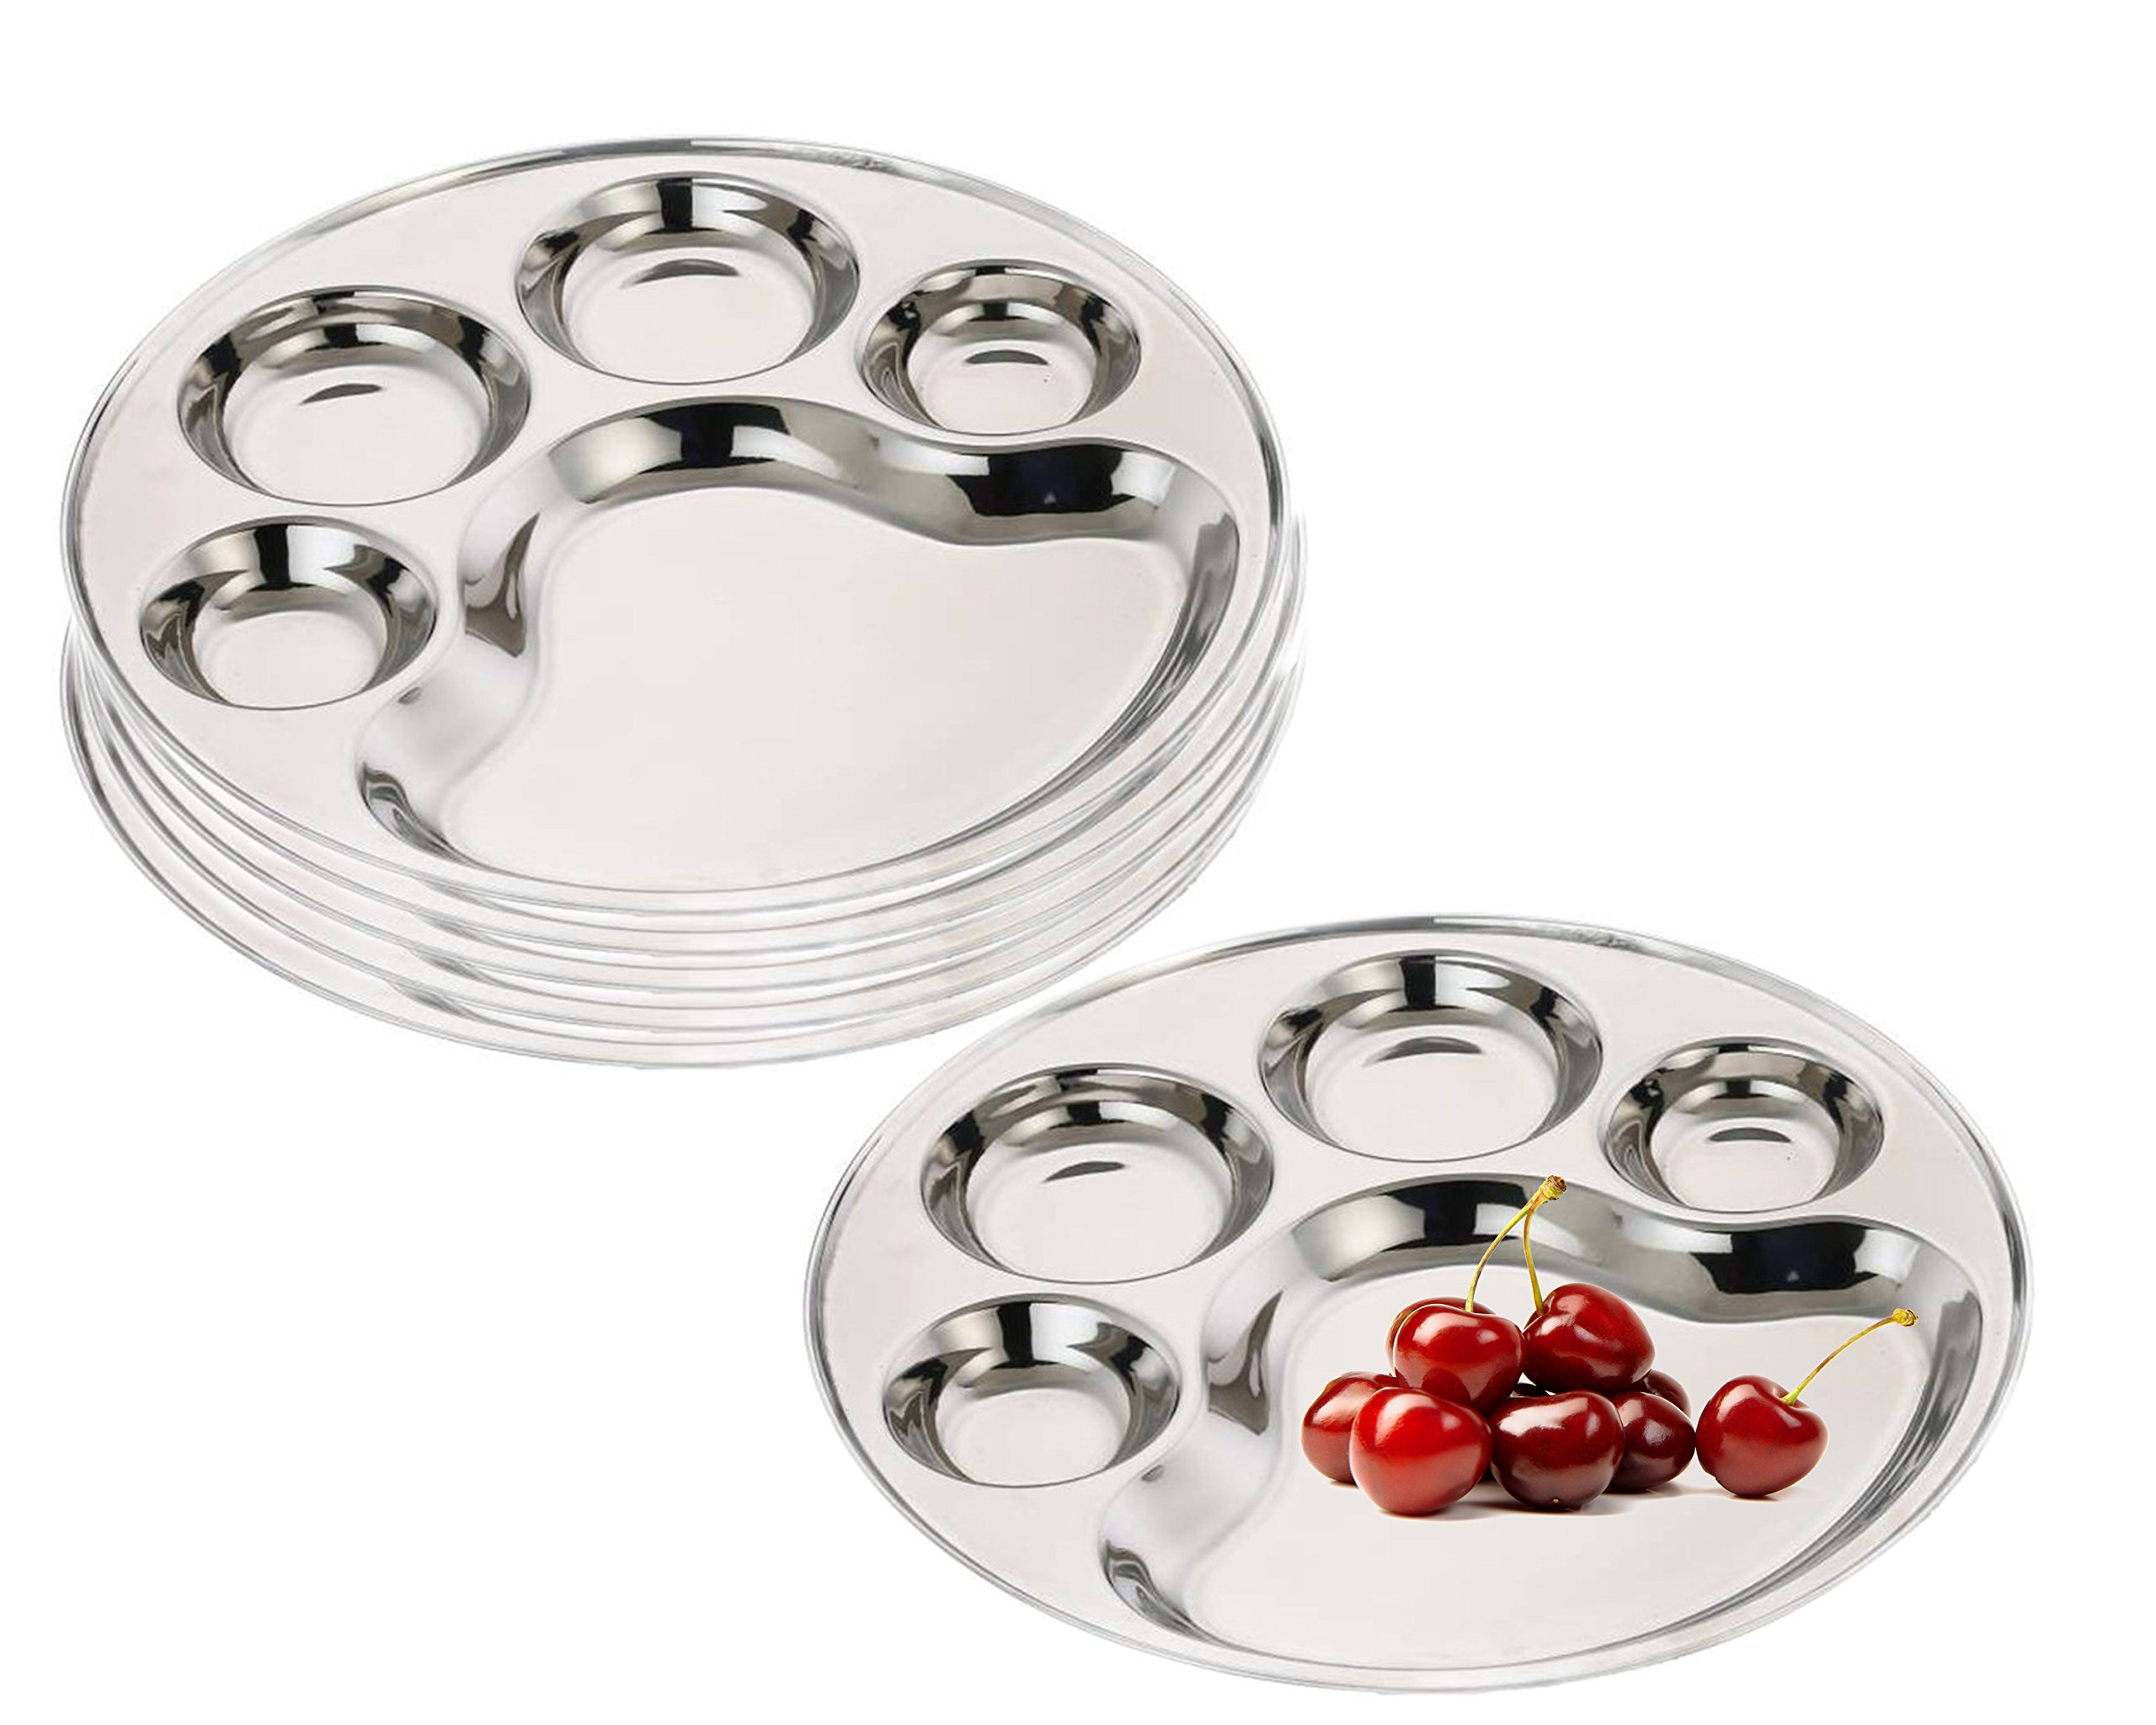 King International 100% Stainless Steel Round 5 in 1 Five Compartment Divided Dinner Plate | Stainless steel Plate | Mess Trays Great for Camping | Set of 6 Pieces